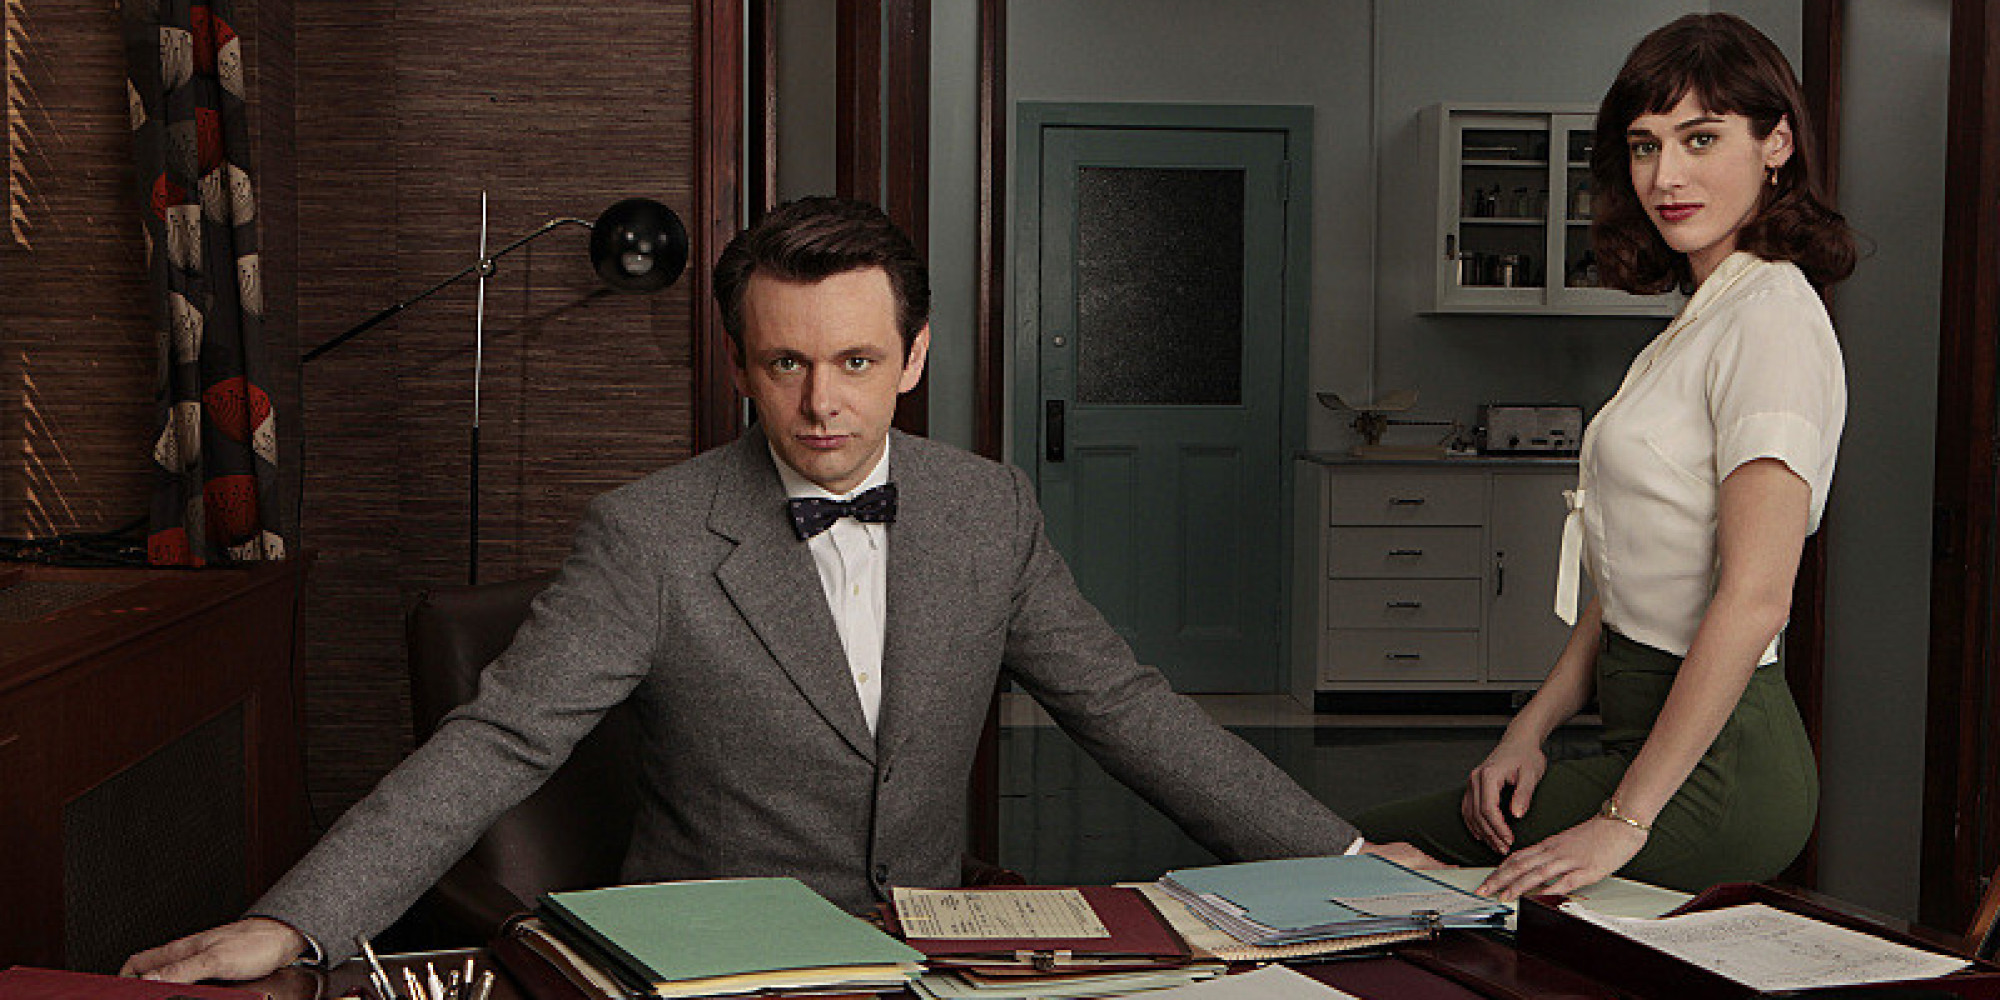 Michael Sheen as Dr. William Masters and Lizzy Caplan as Virginia Johnson in Masters of Sex (Pilot) - ) - Photo: Craig Blankenhorn/SHOWTIME - Photo ID: MastersOfSex_Pilot_caplan_sheen_077ra